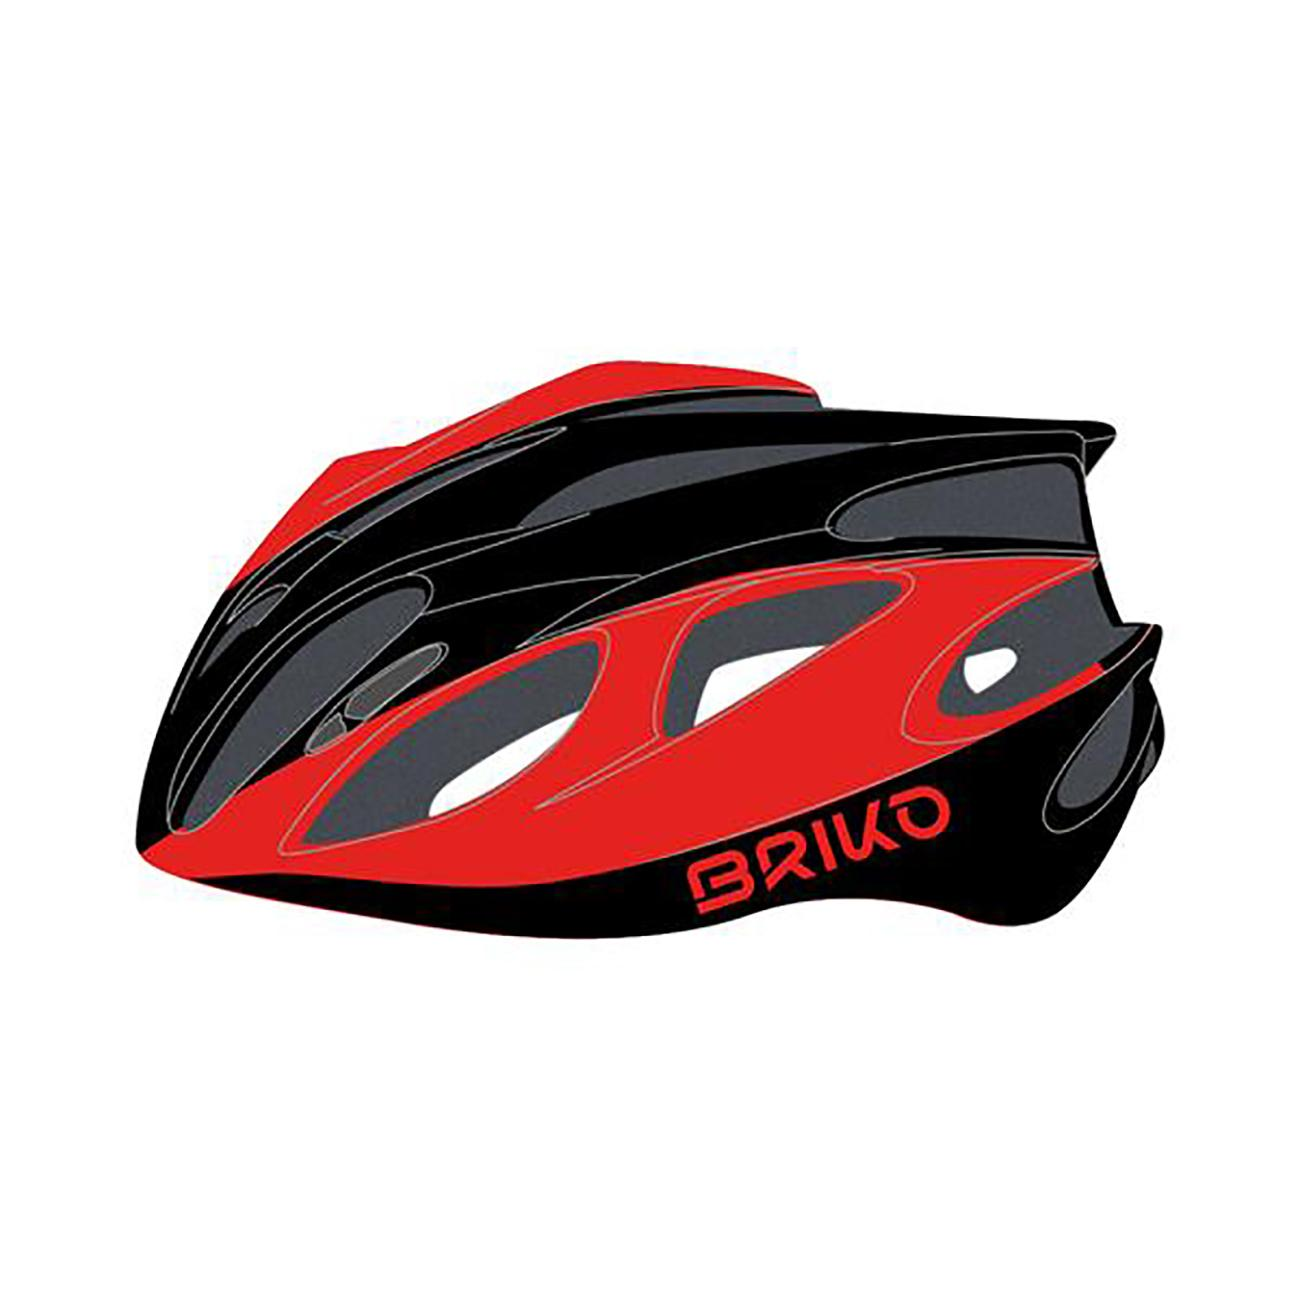 Briko Fietshelm Race unisex Zwart Rood - Kiso Bike Helmet Shiny Black Red